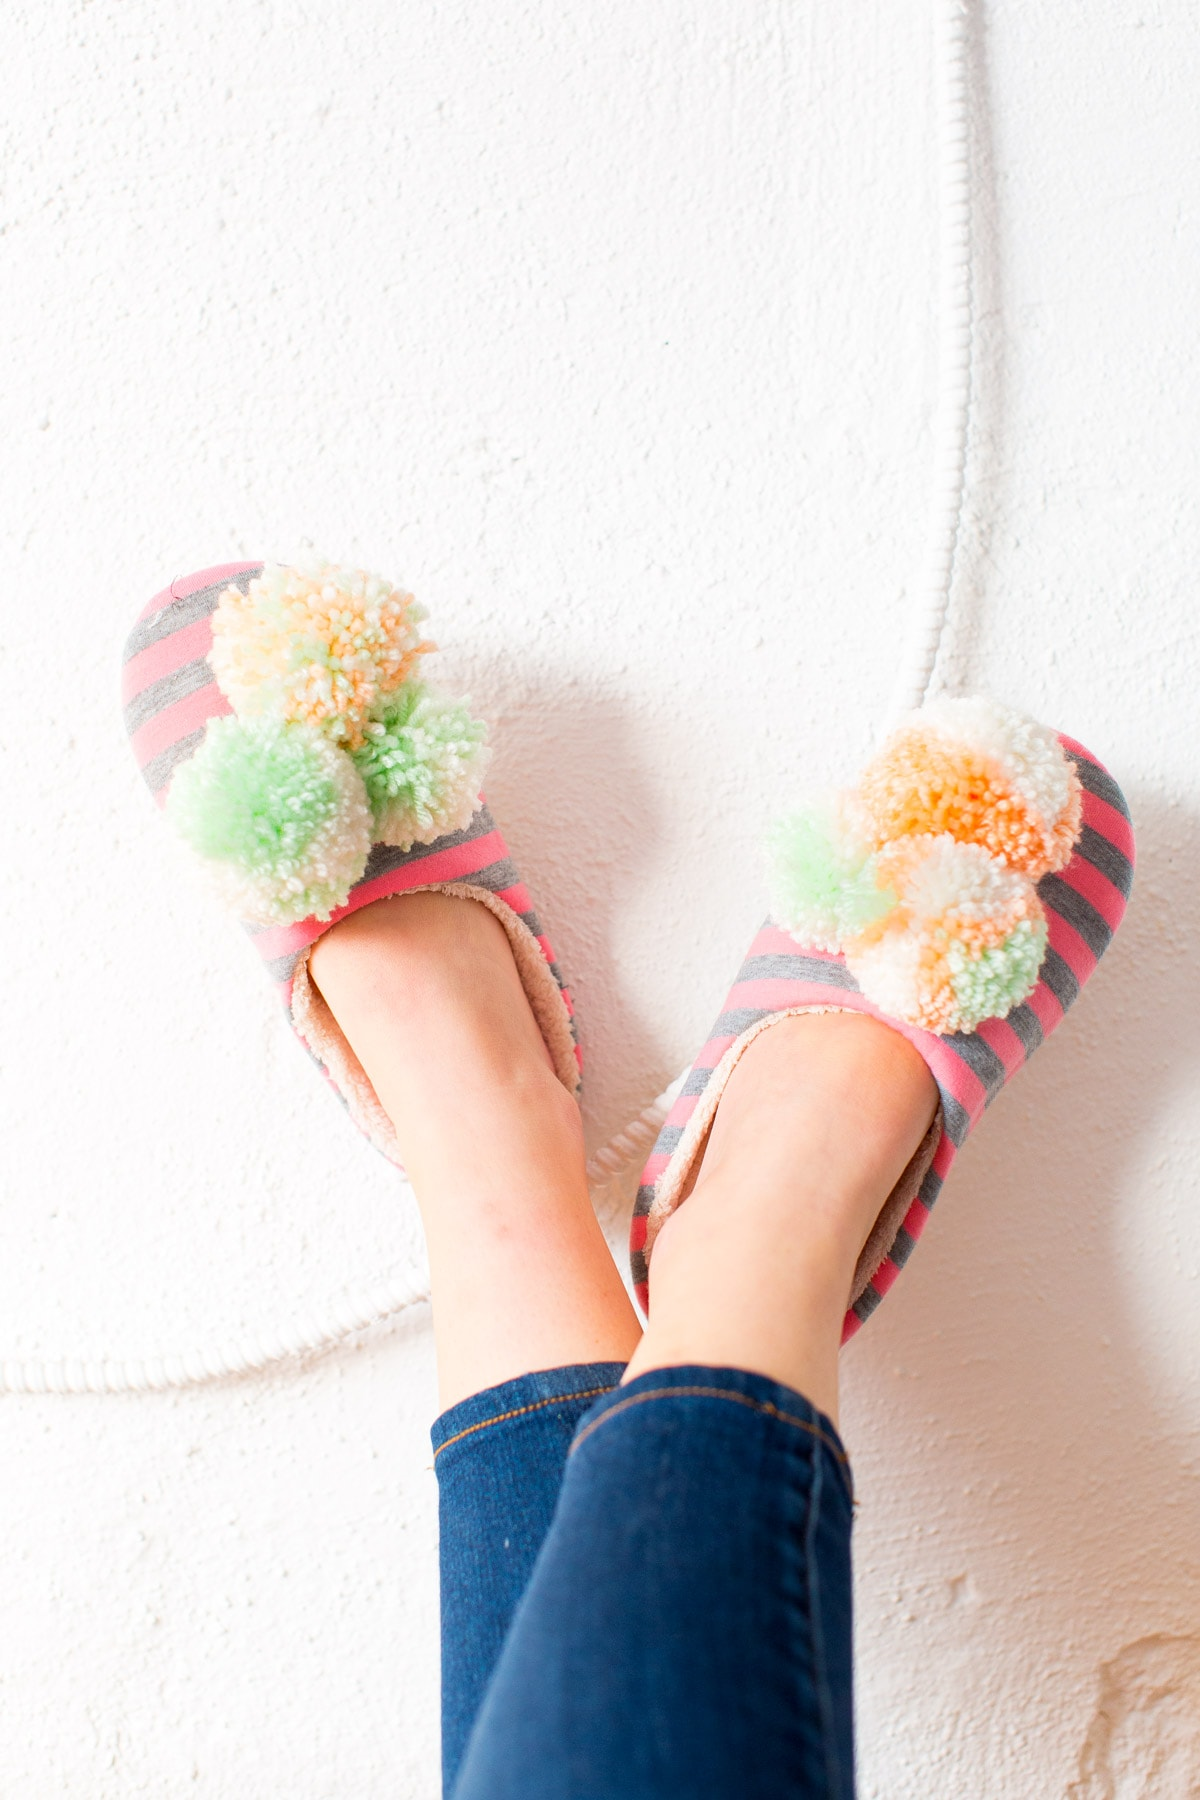 DIY pom pom slippers for Winter by lifestyle blogger and DIY blogger Ashley Rose of Sugar & Cloth